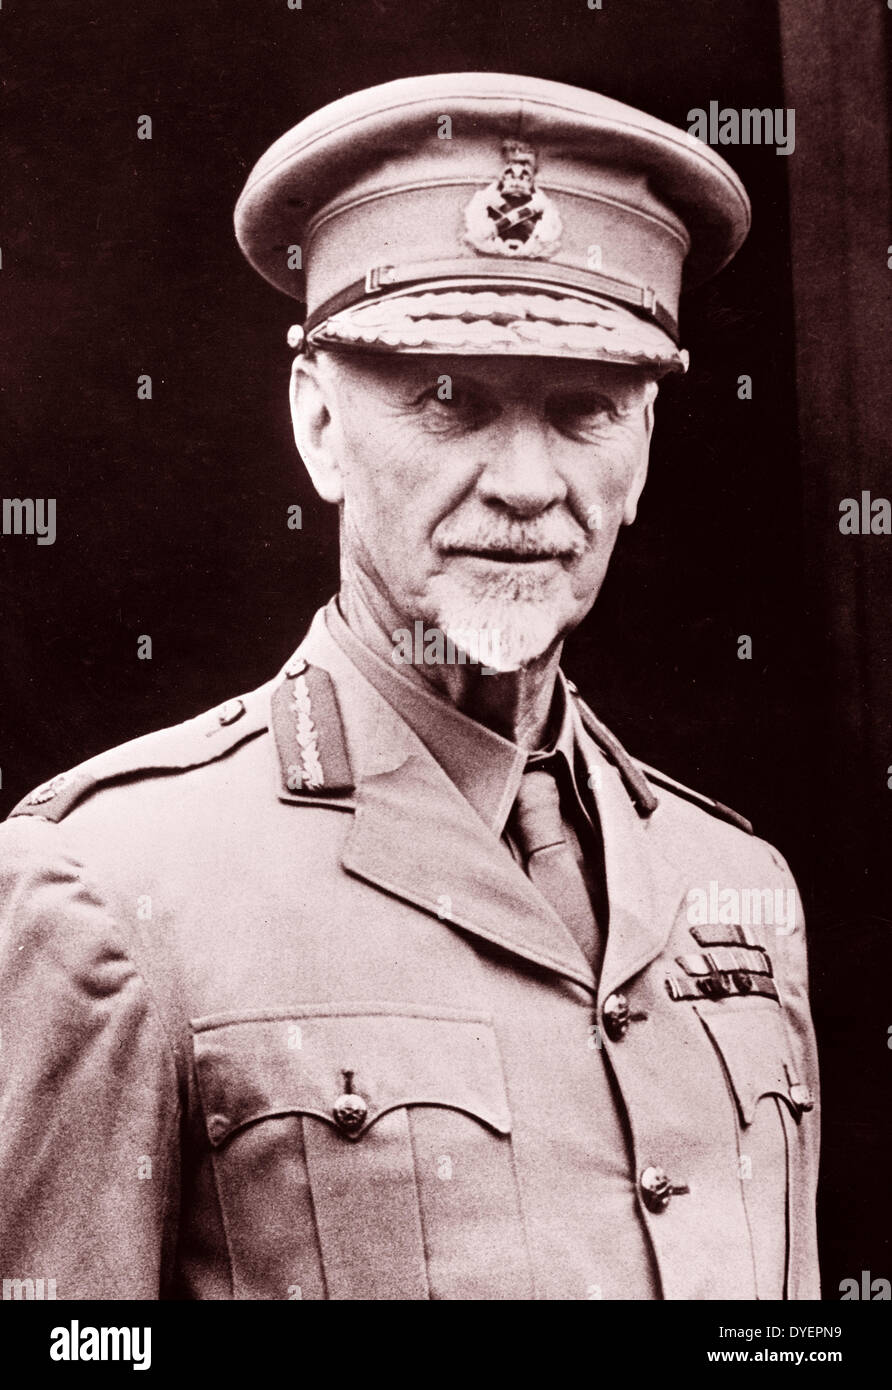 Jan Christiaan Smuts, (1870-1950) A prominent South African and British Commonwealth statesman, - Stock Image